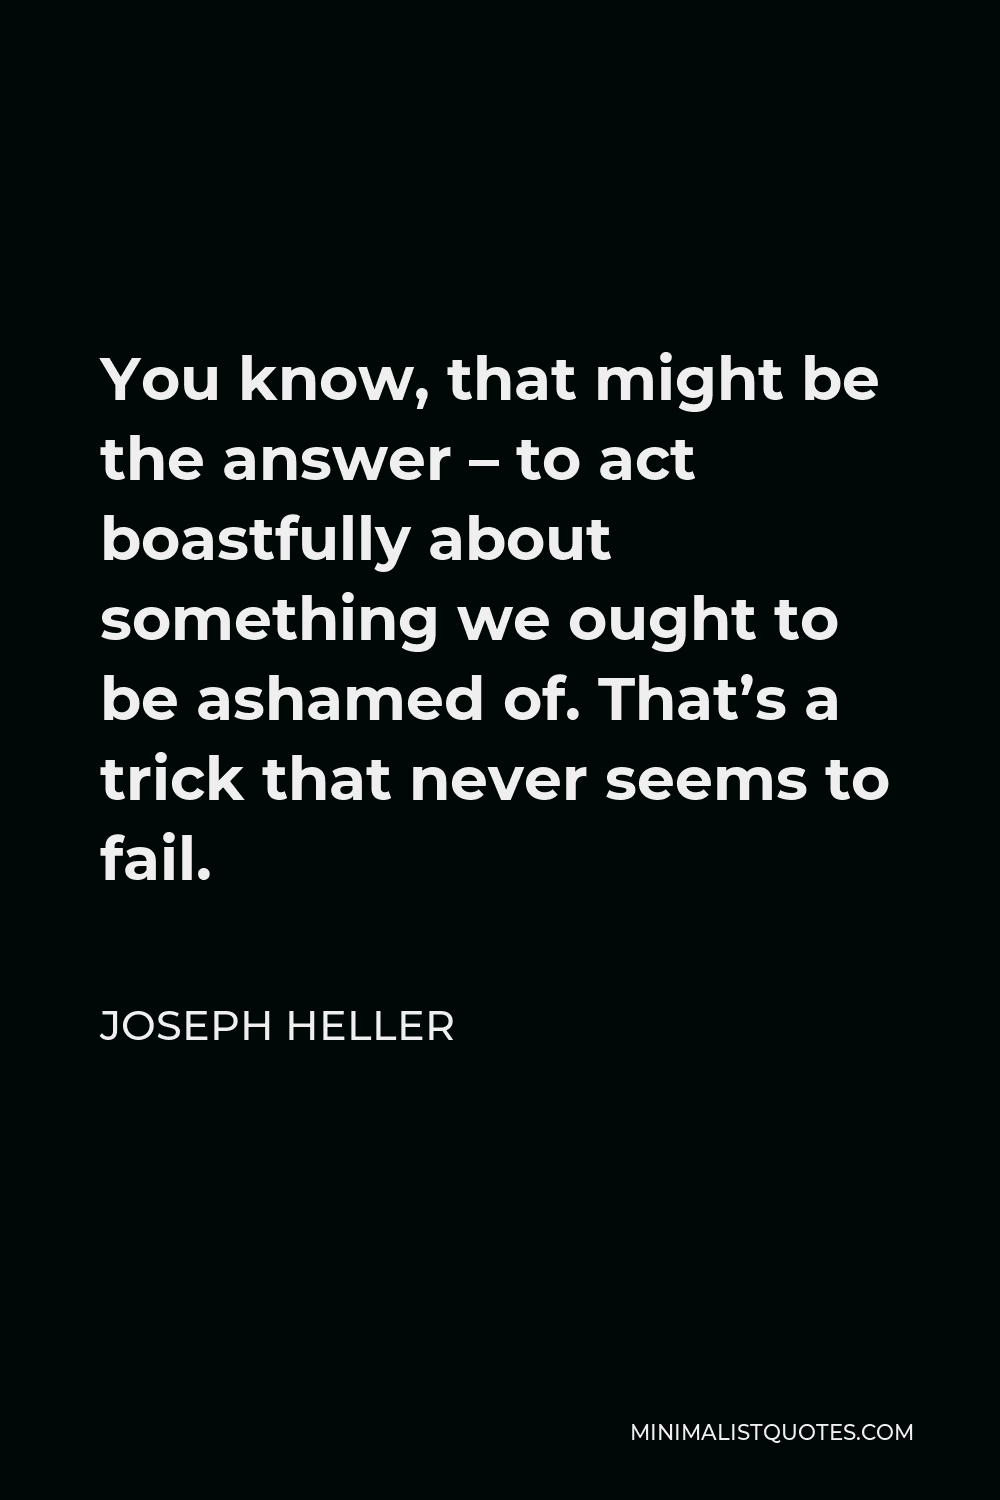 Joseph Heller Quote - You know, that might be the answer – to act boastfully about something we ought to be ashamed of. That's a trick that never seems to fail.